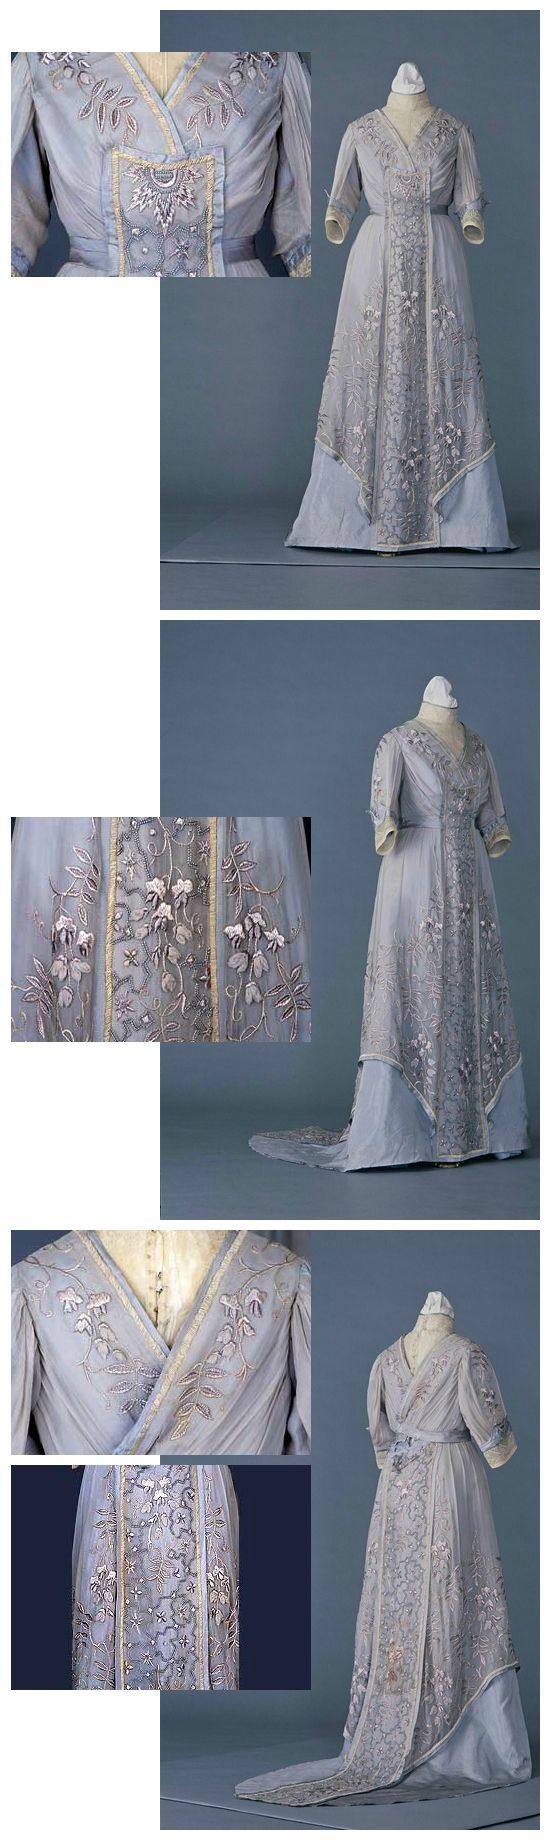 Dress (robe montante) belonging to Empress Shoken, made in France, Meiji era (1868-1912). Collection of Sugino Costume Museum (link: http://www.costumemuseum.jp/french/collection/j_isho/j152.html#).: